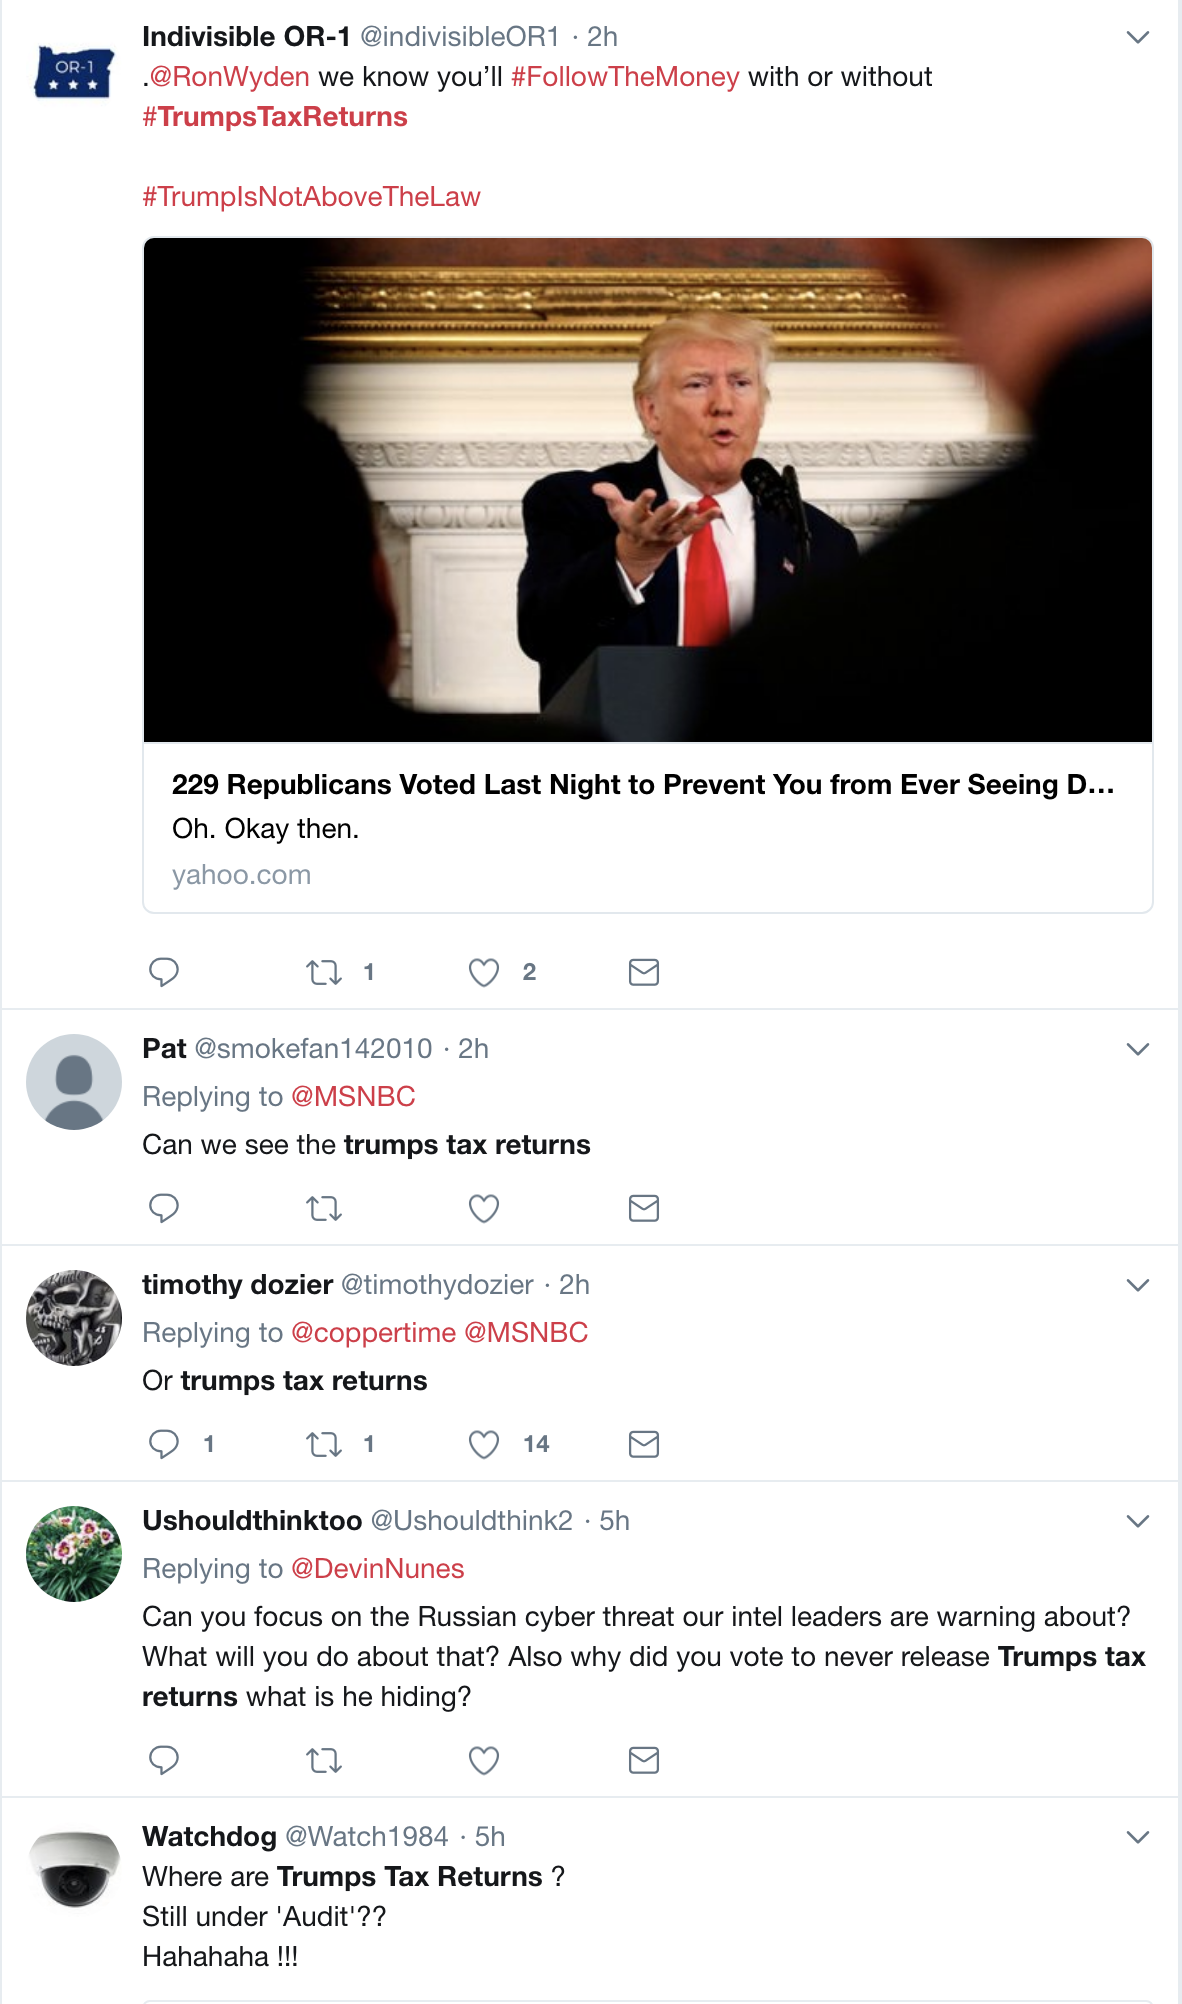 Screen-Shot-2018-03-06-at-1.03.15-PM Trump Freaks; Law Passes Requiring  Him To Release Tax Returns Or Be Disqualified In 2020 Donald Trump Election 2020 Politics Top Stories